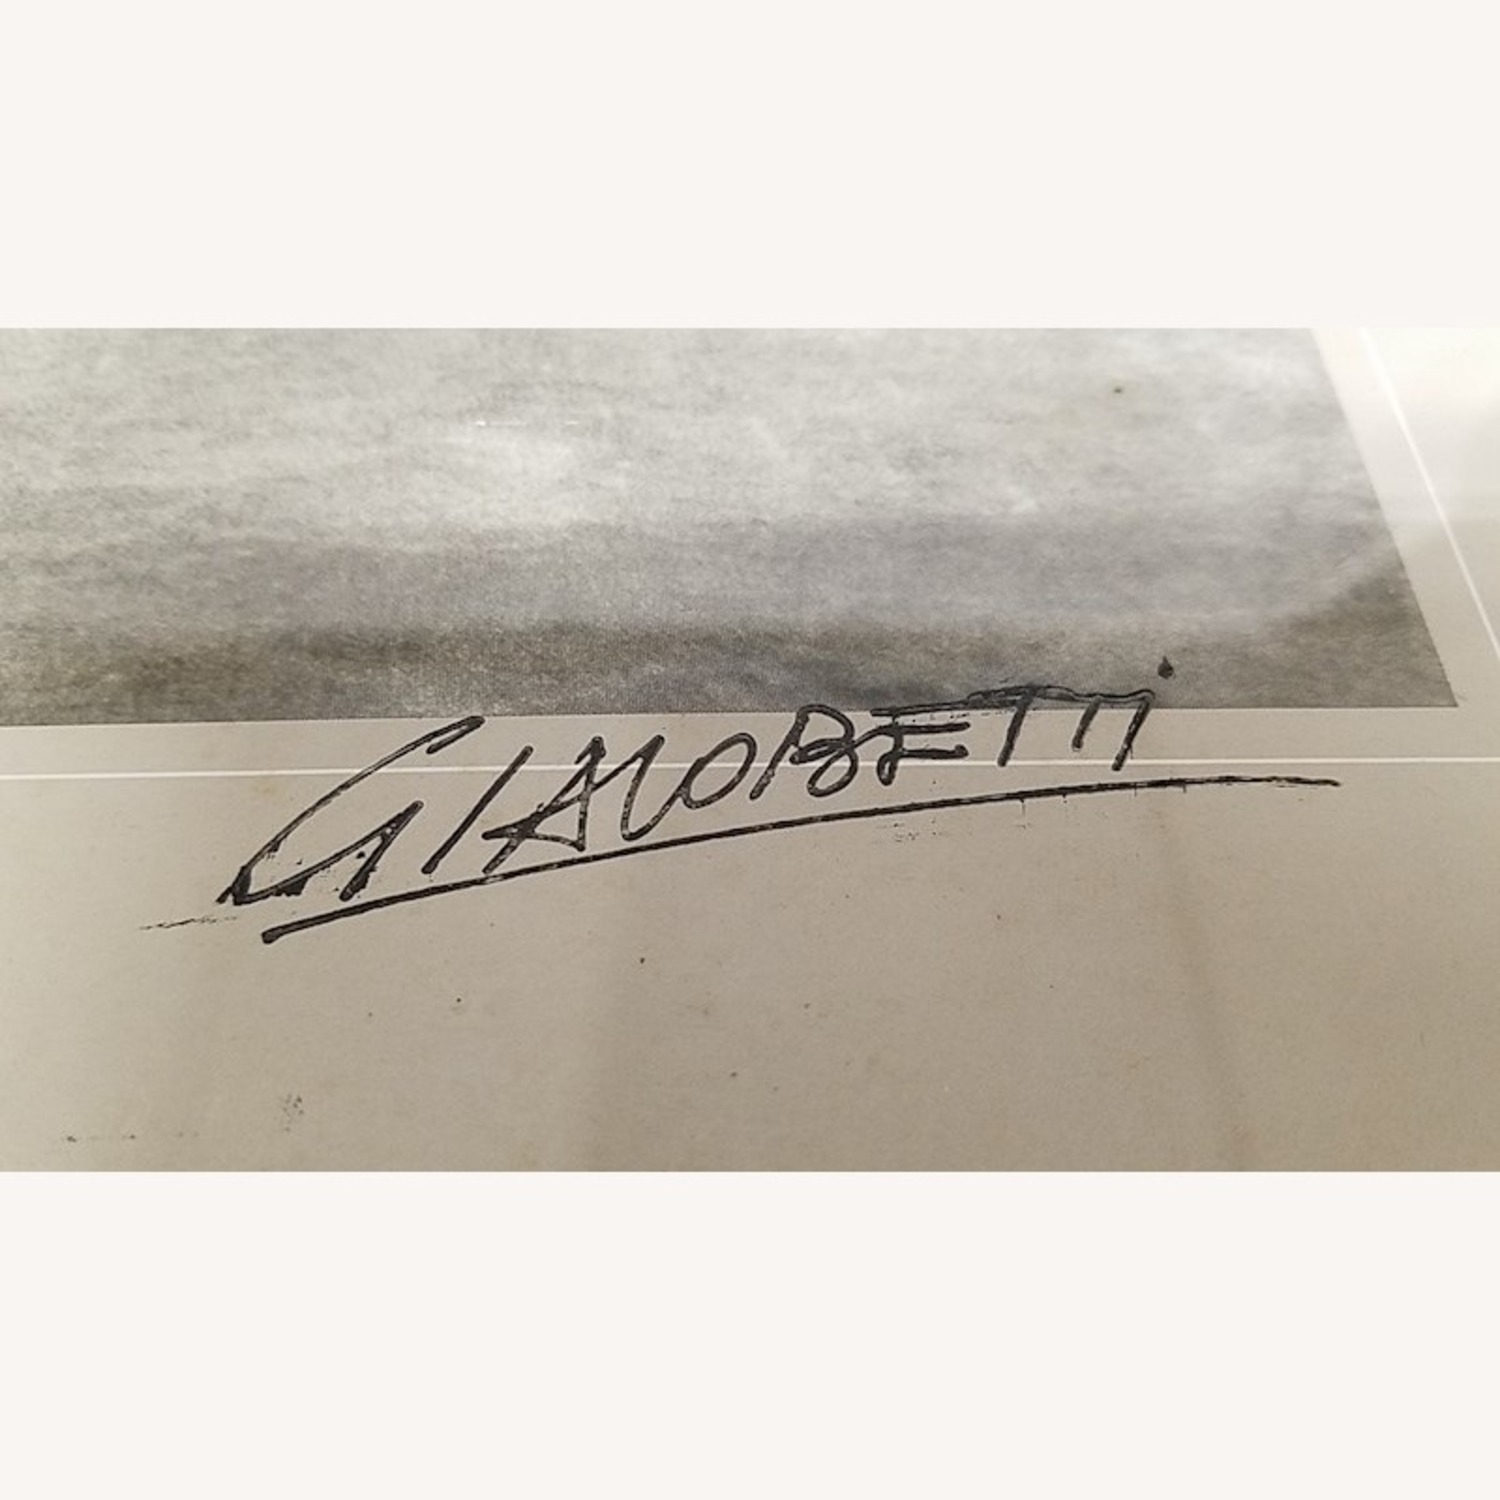 SIGNED Francis Giacobetti Photography Print, Frame - image-3